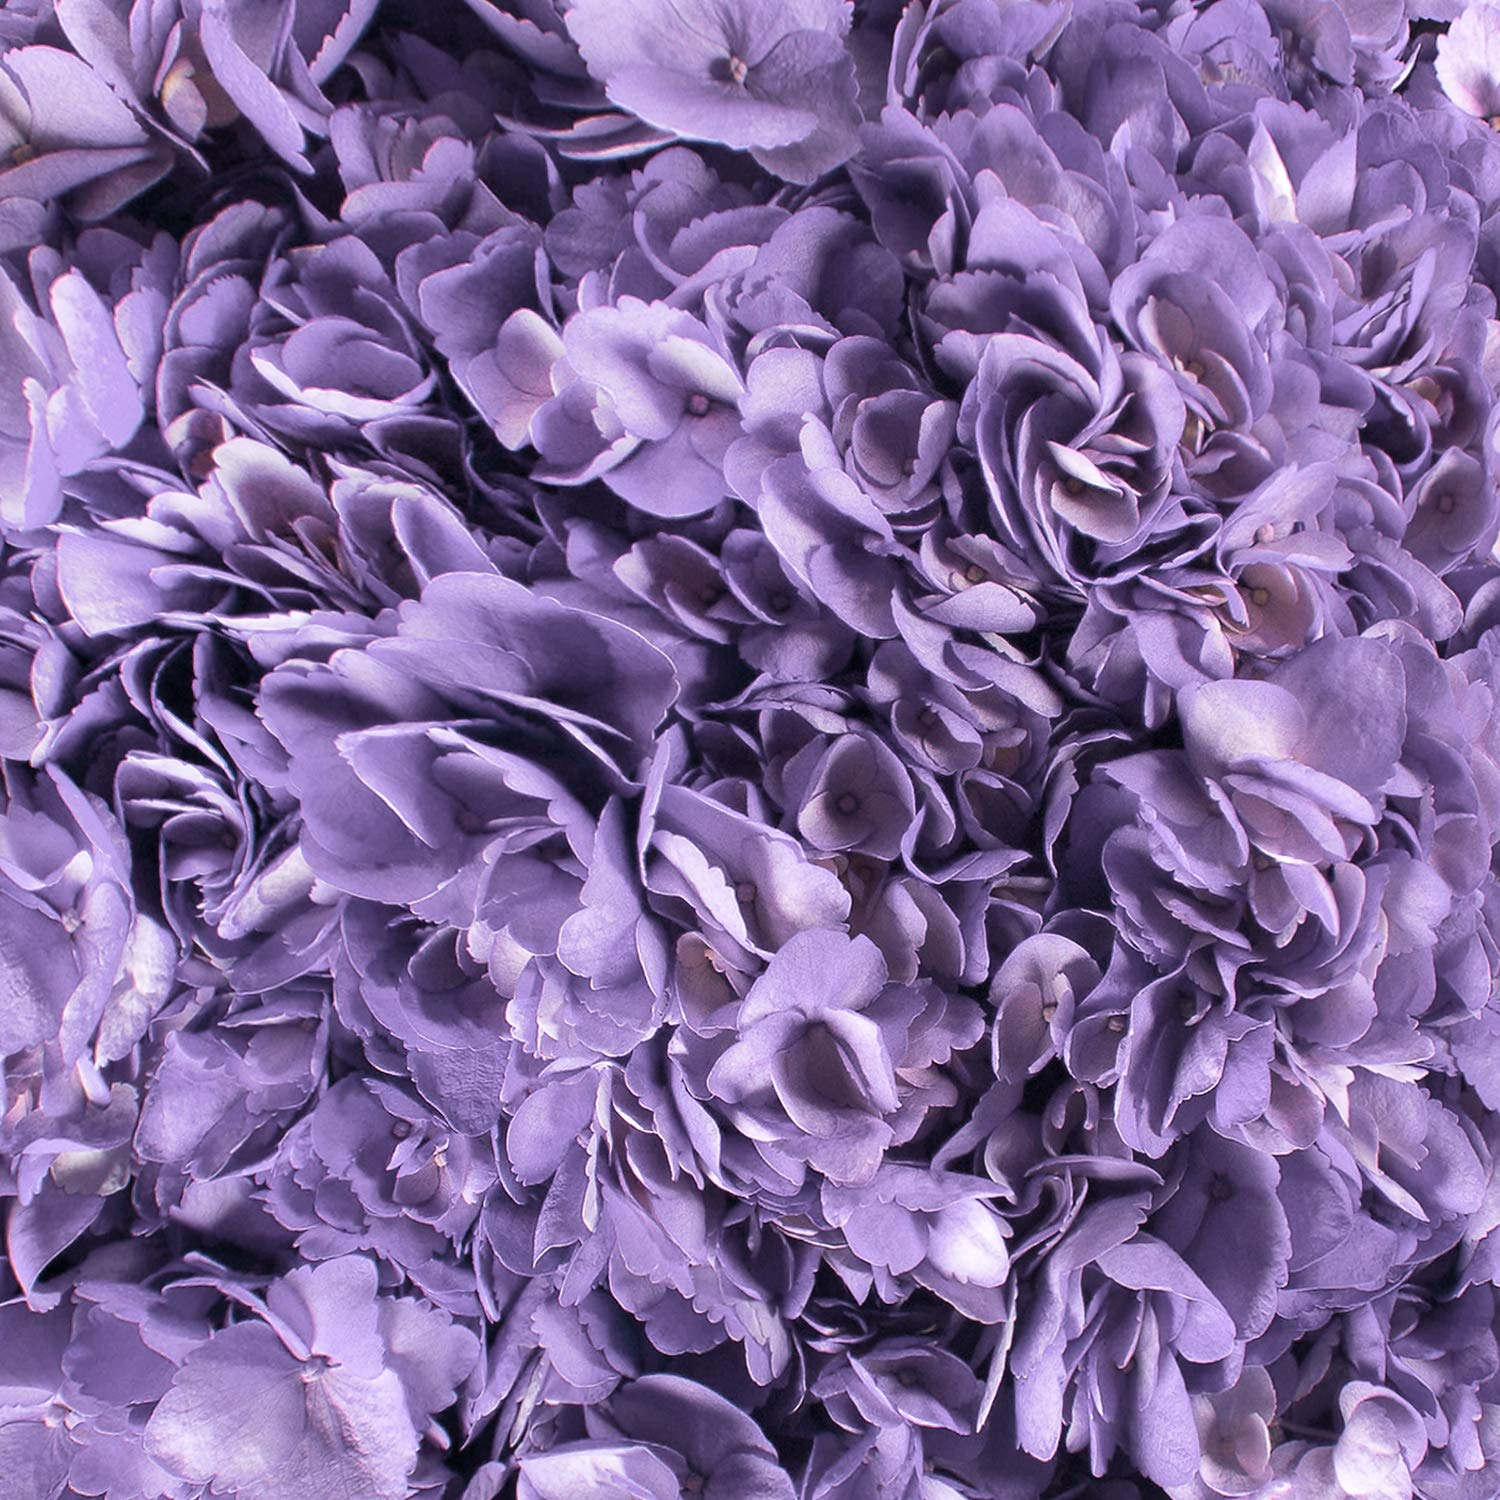 Farm Fresh Natural Painted Lavender Hydrangeas - Pack 15 by Bloomingmore (Image #4)